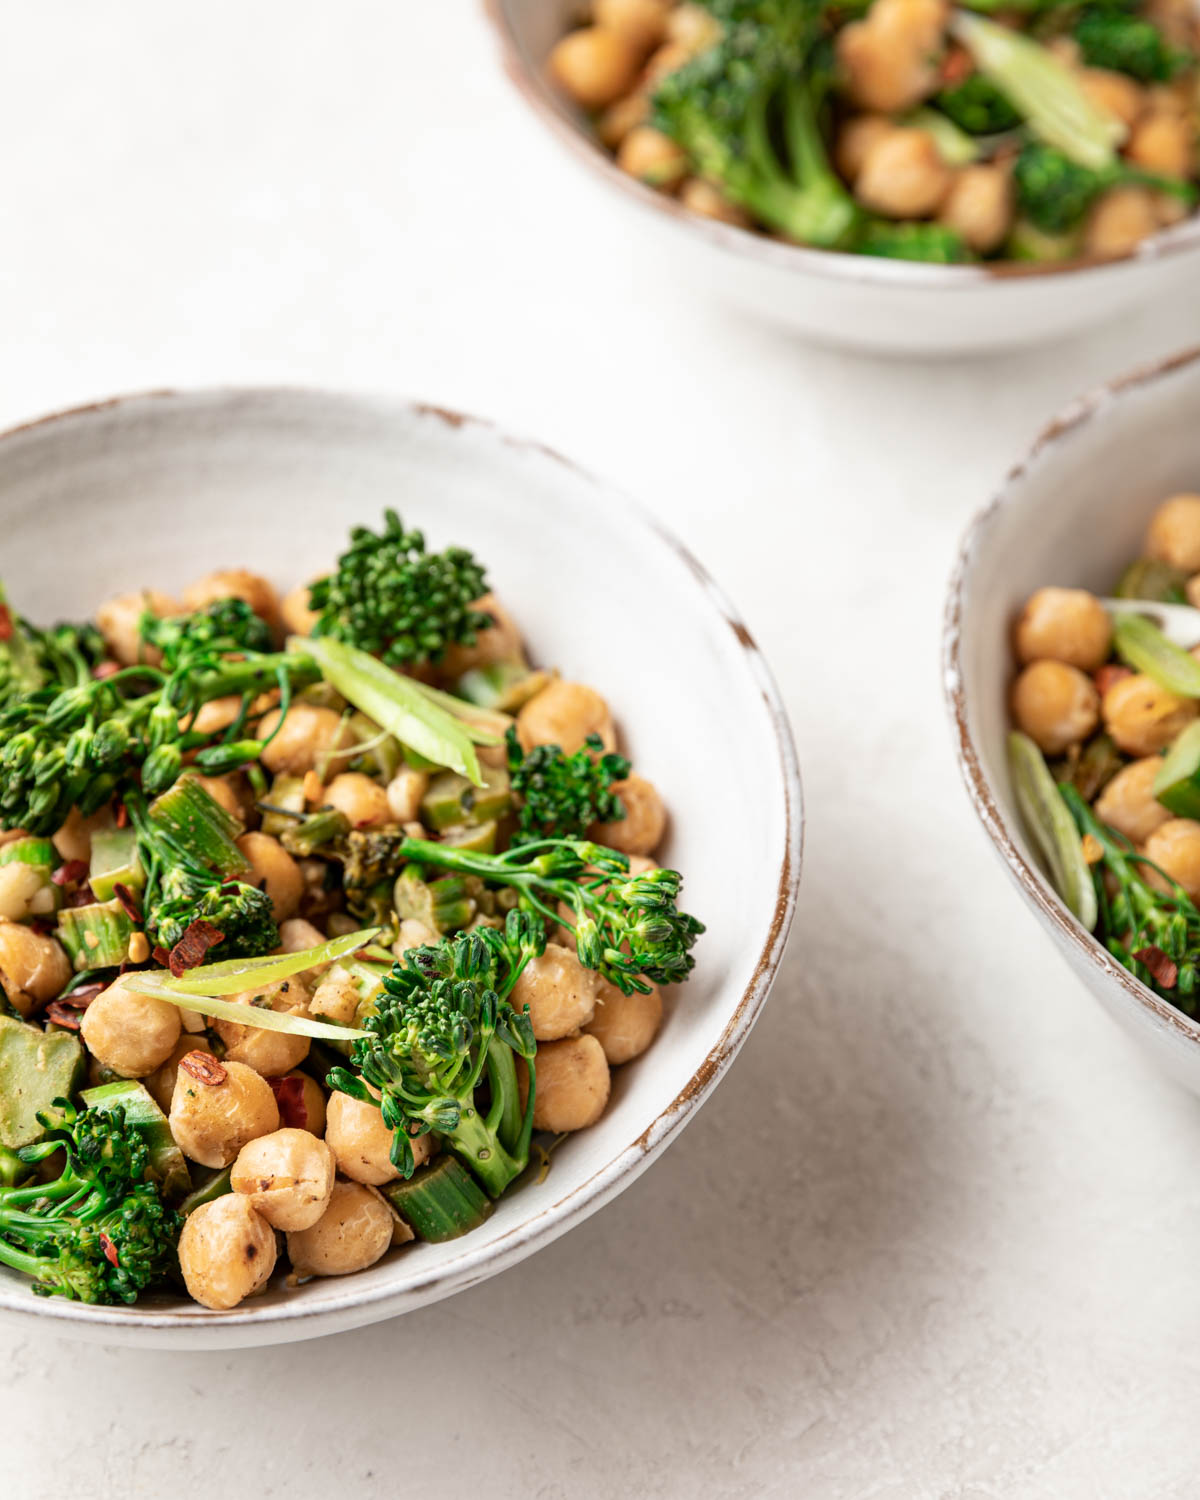 A closeup view of the prepared meal showing bright green broccolini and crispy garbanzo beans